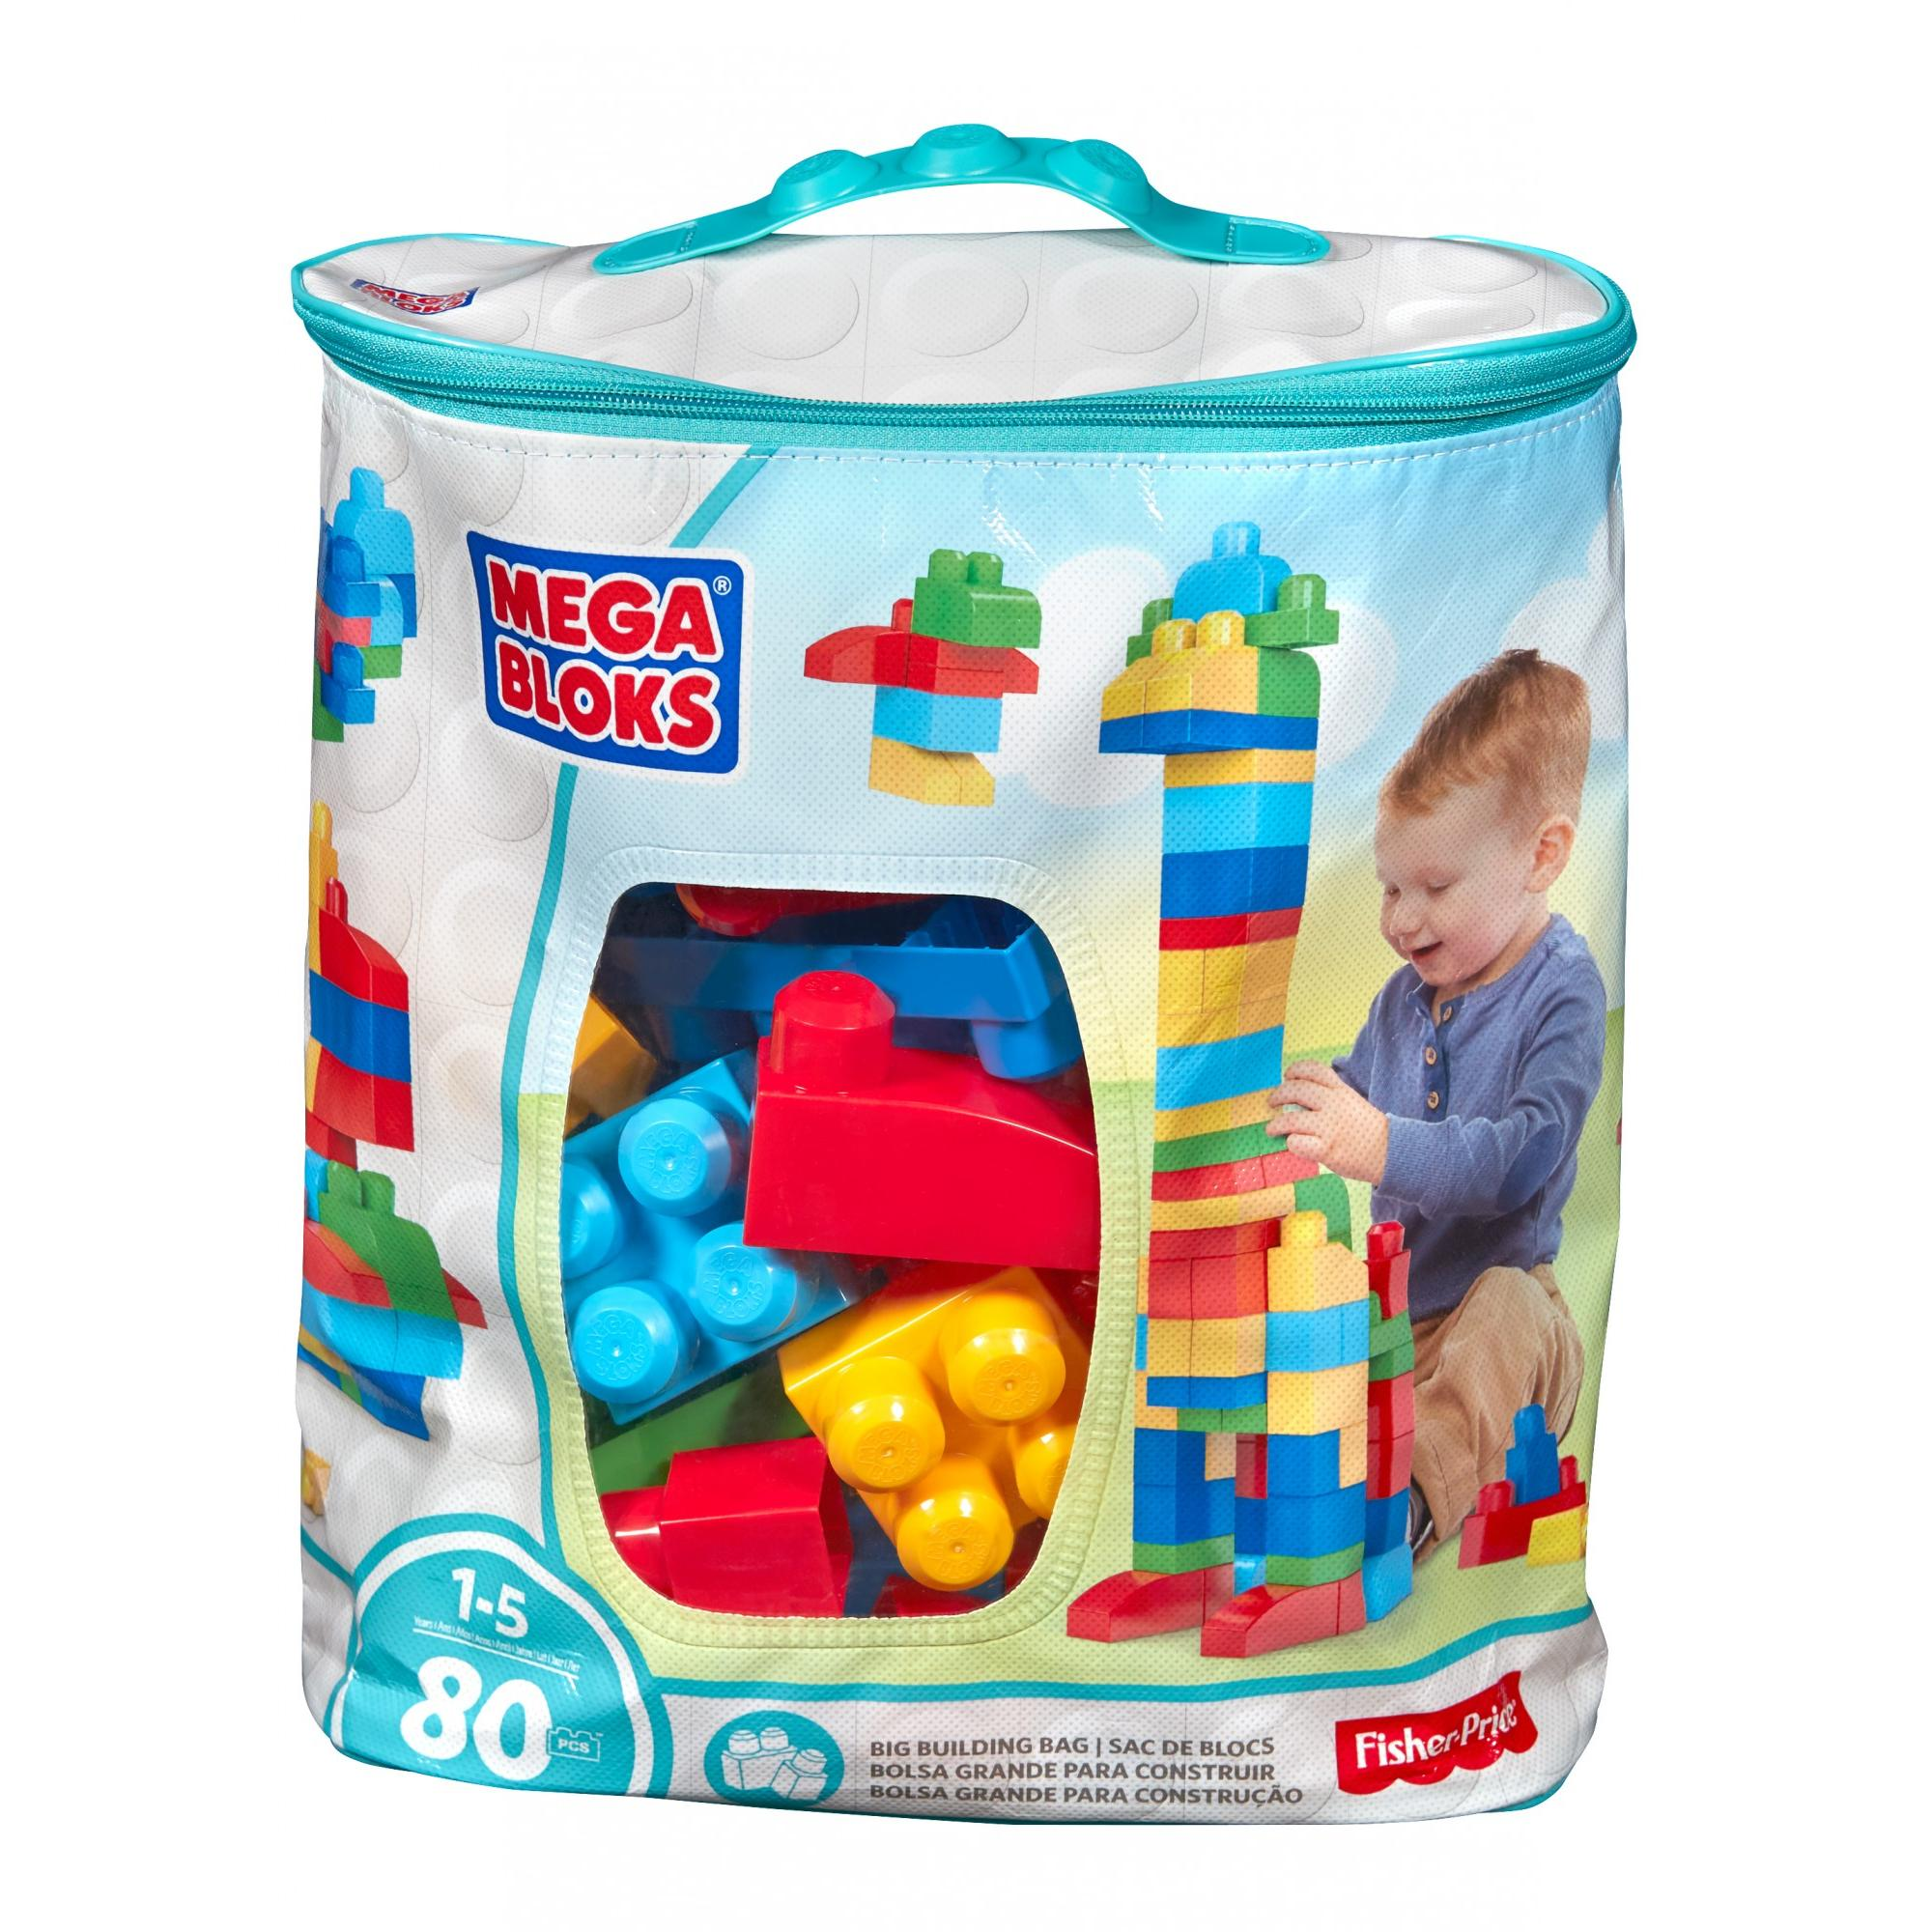 Mega Bloks Big Building Bag 80-Piece Classic Building Set